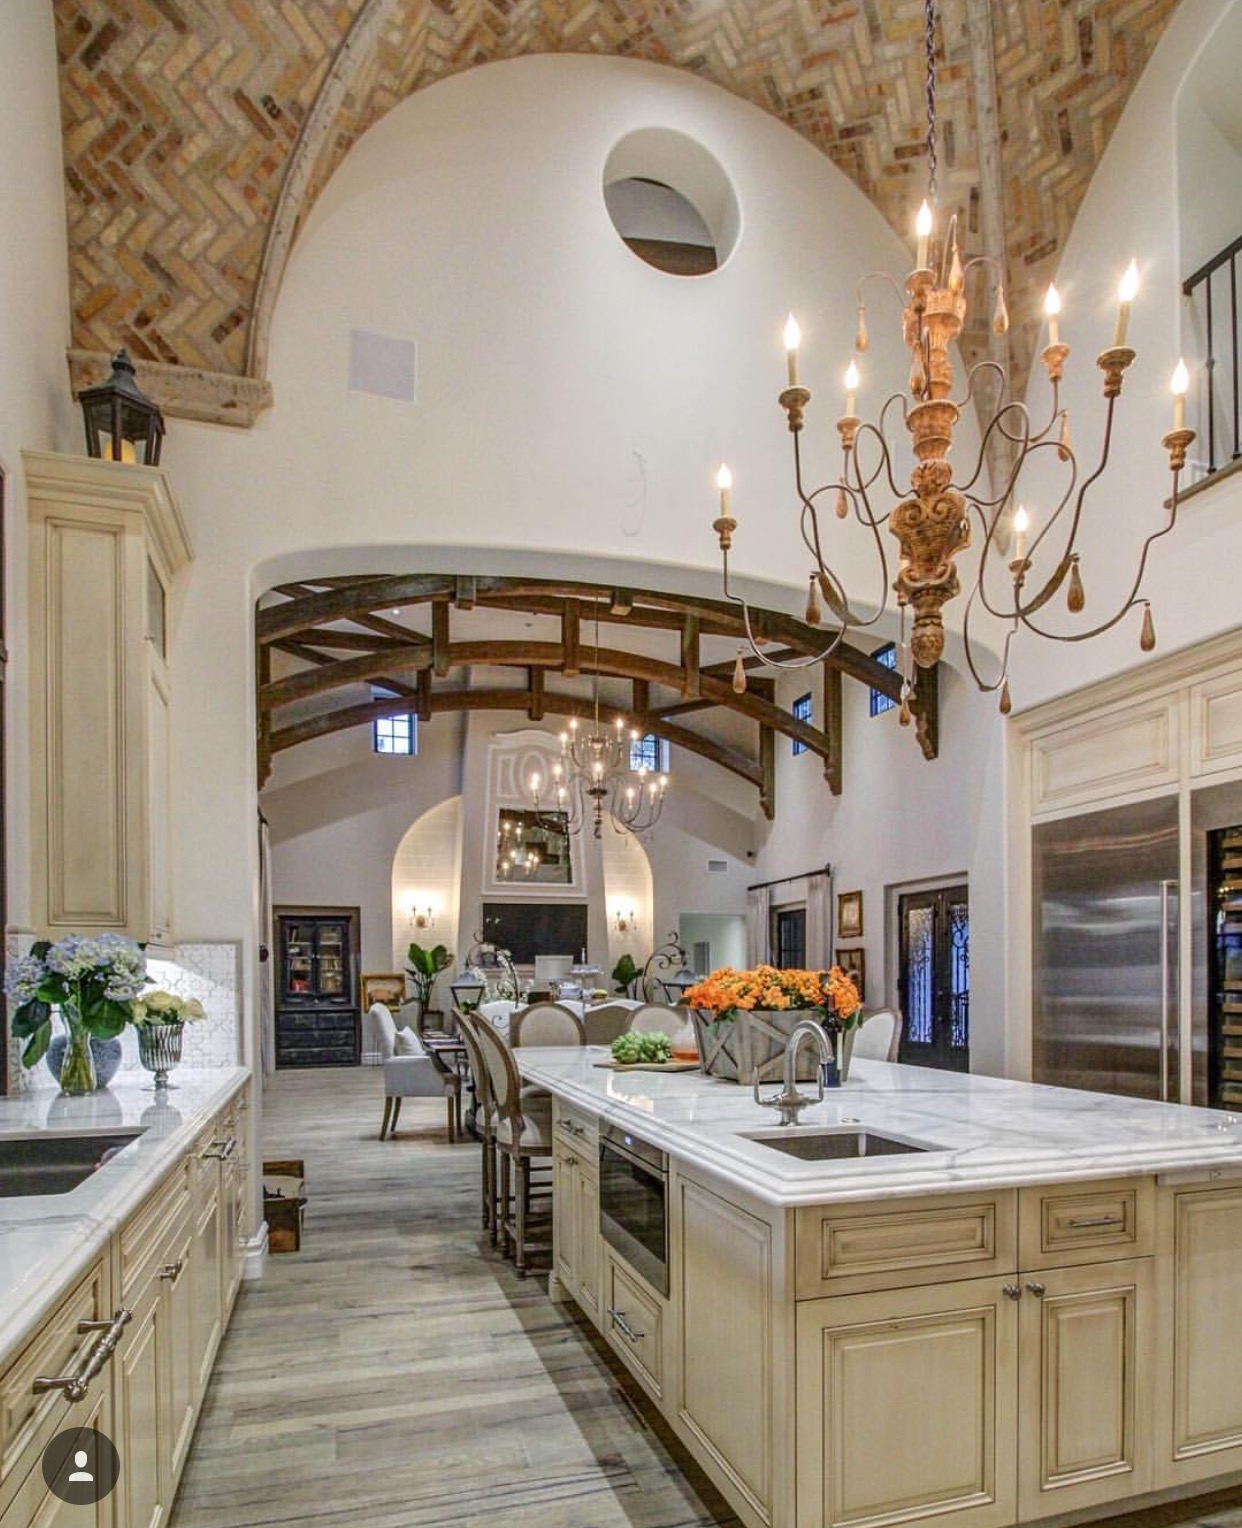 Kitchen Great Room of whole house remodel/makeover in Chandler by Candelaria Design and Earth and Images.